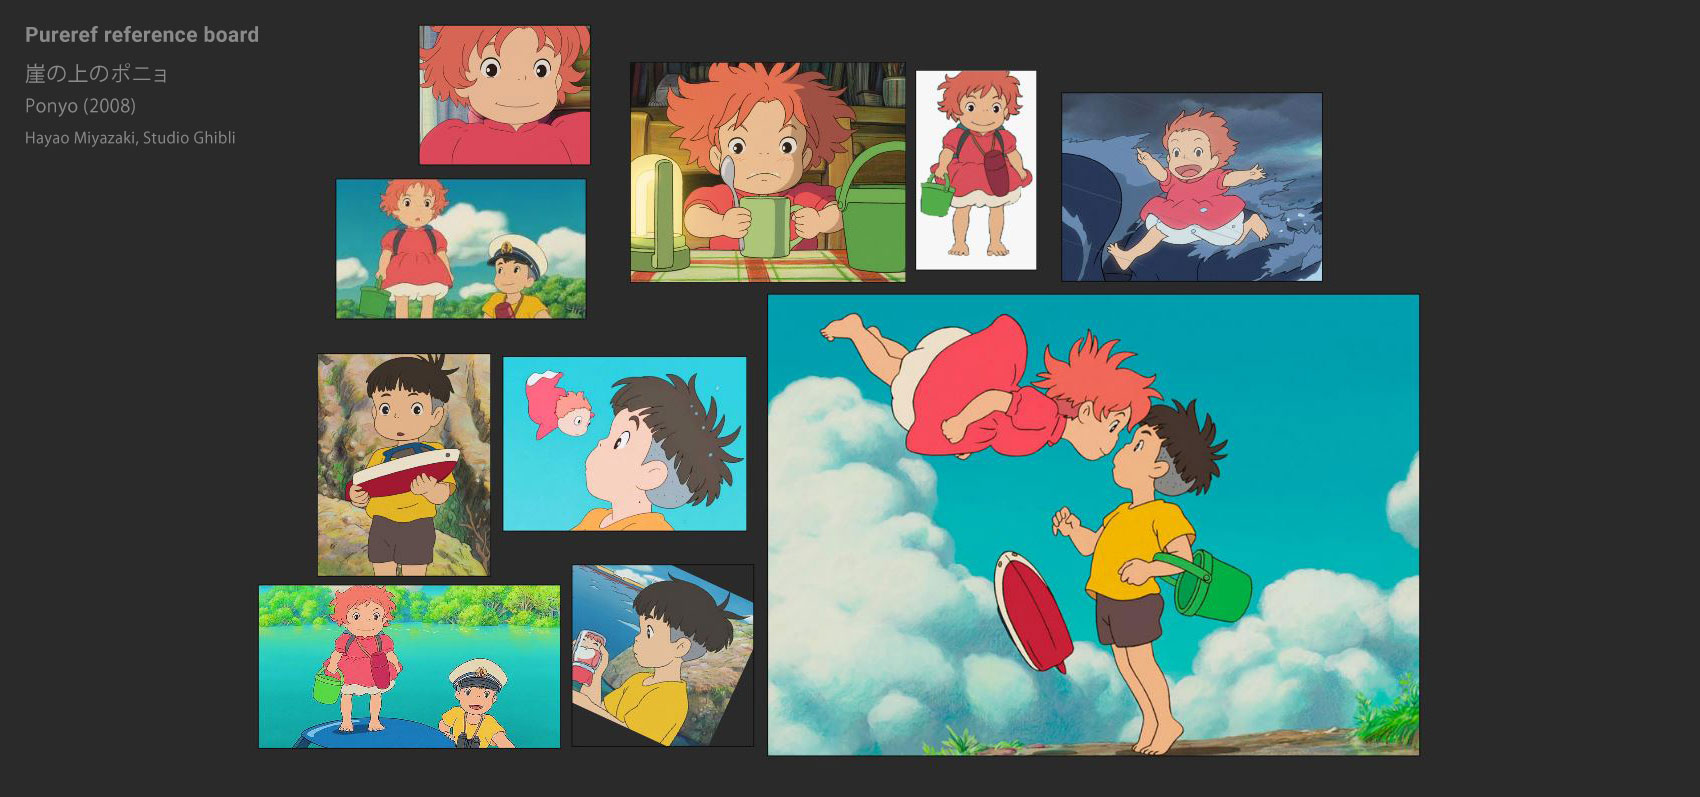 ponyo reference images